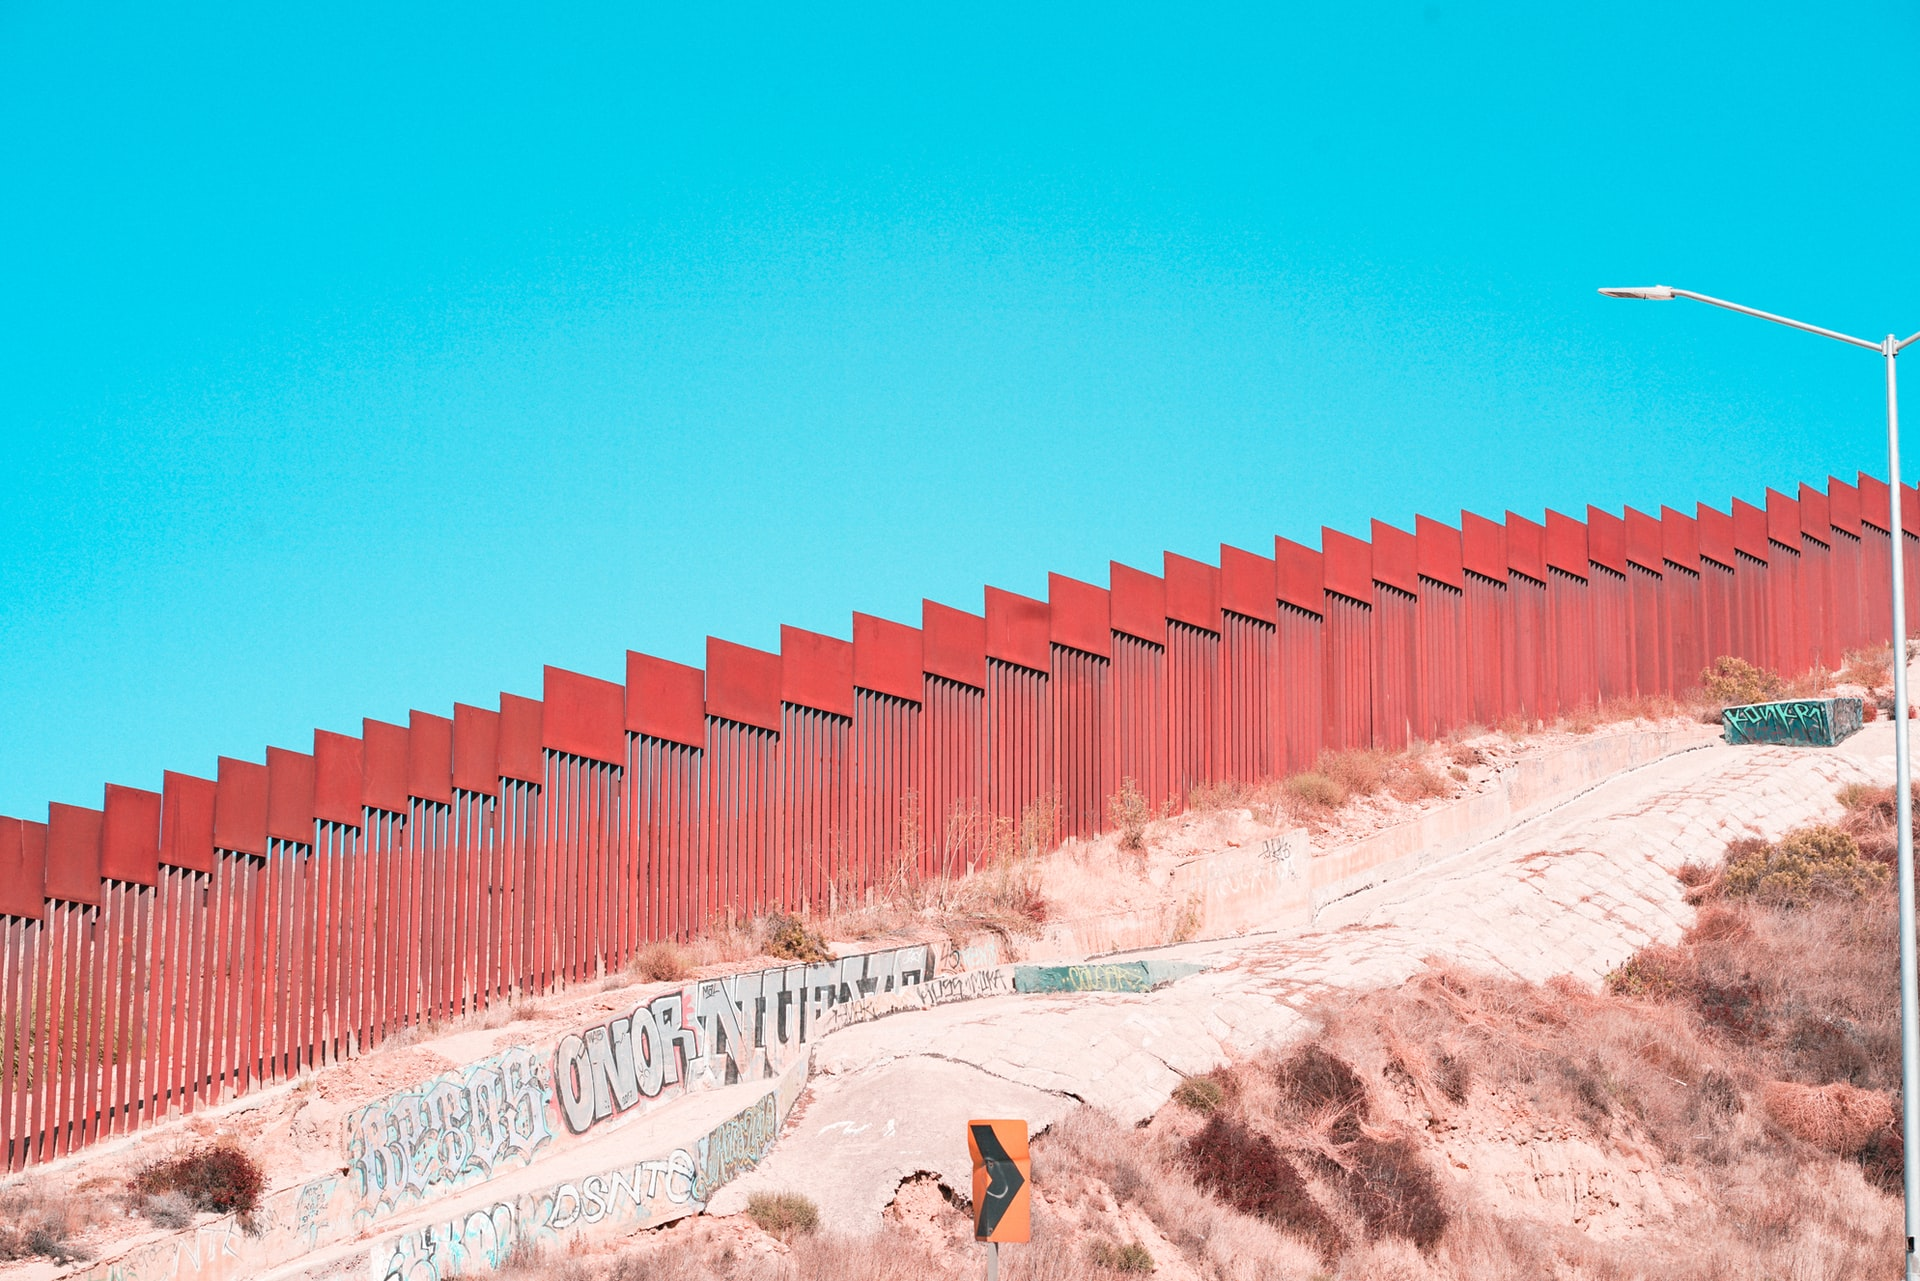 High-tech Invisible Wall Helping in Surveillance along the US-Mexico Border